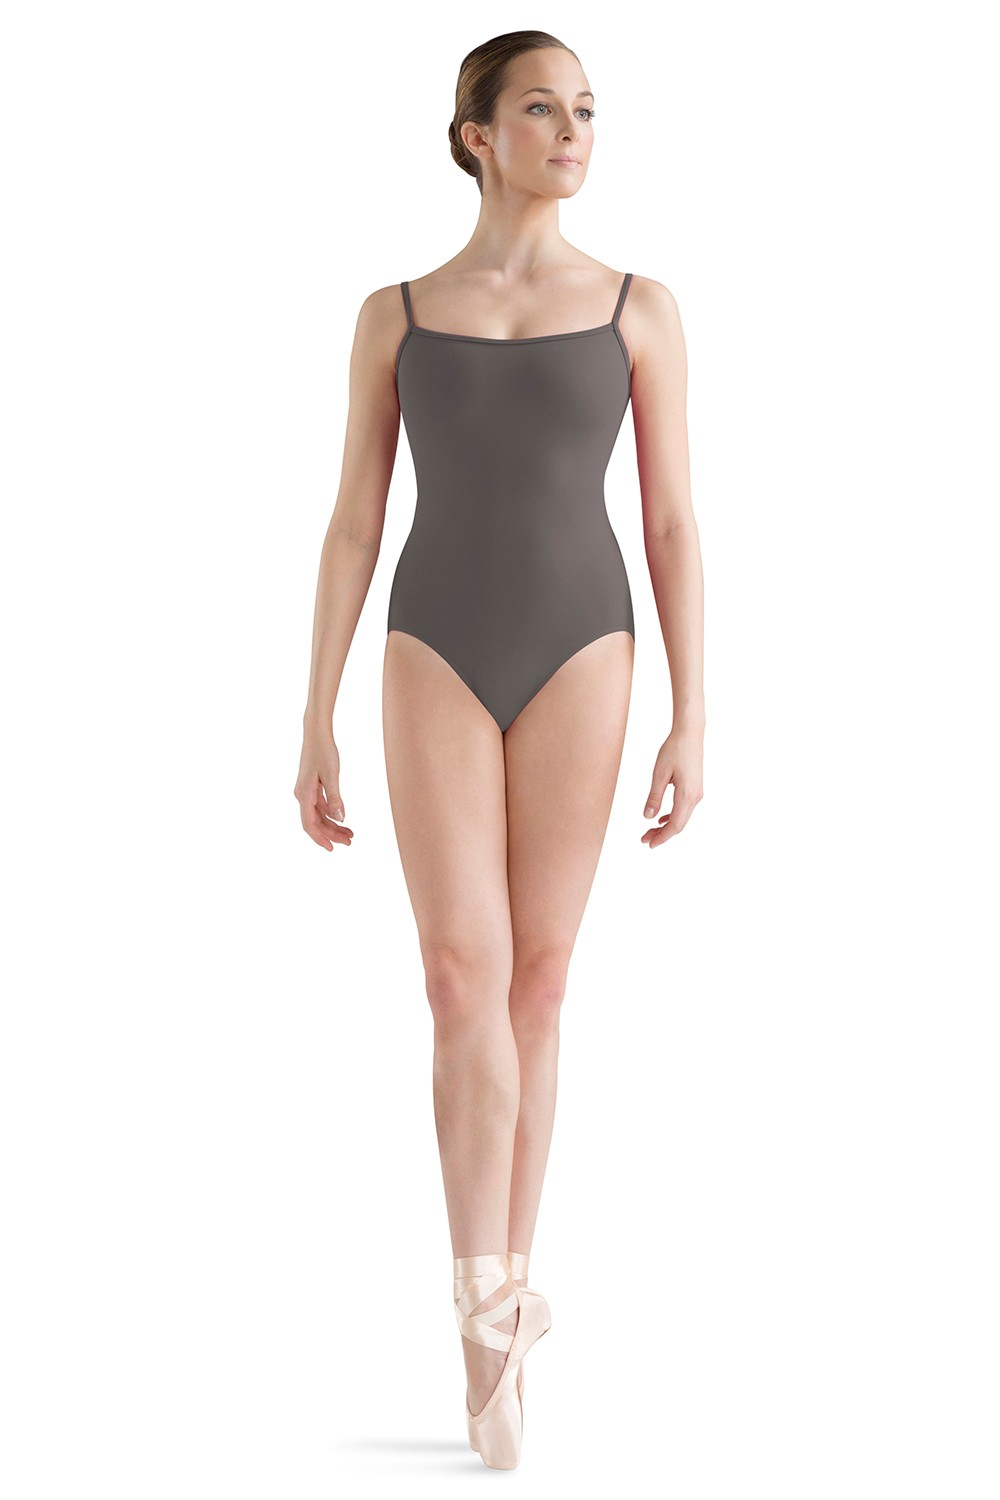 Justaucorps À Bretelles Women's Dance Leotards